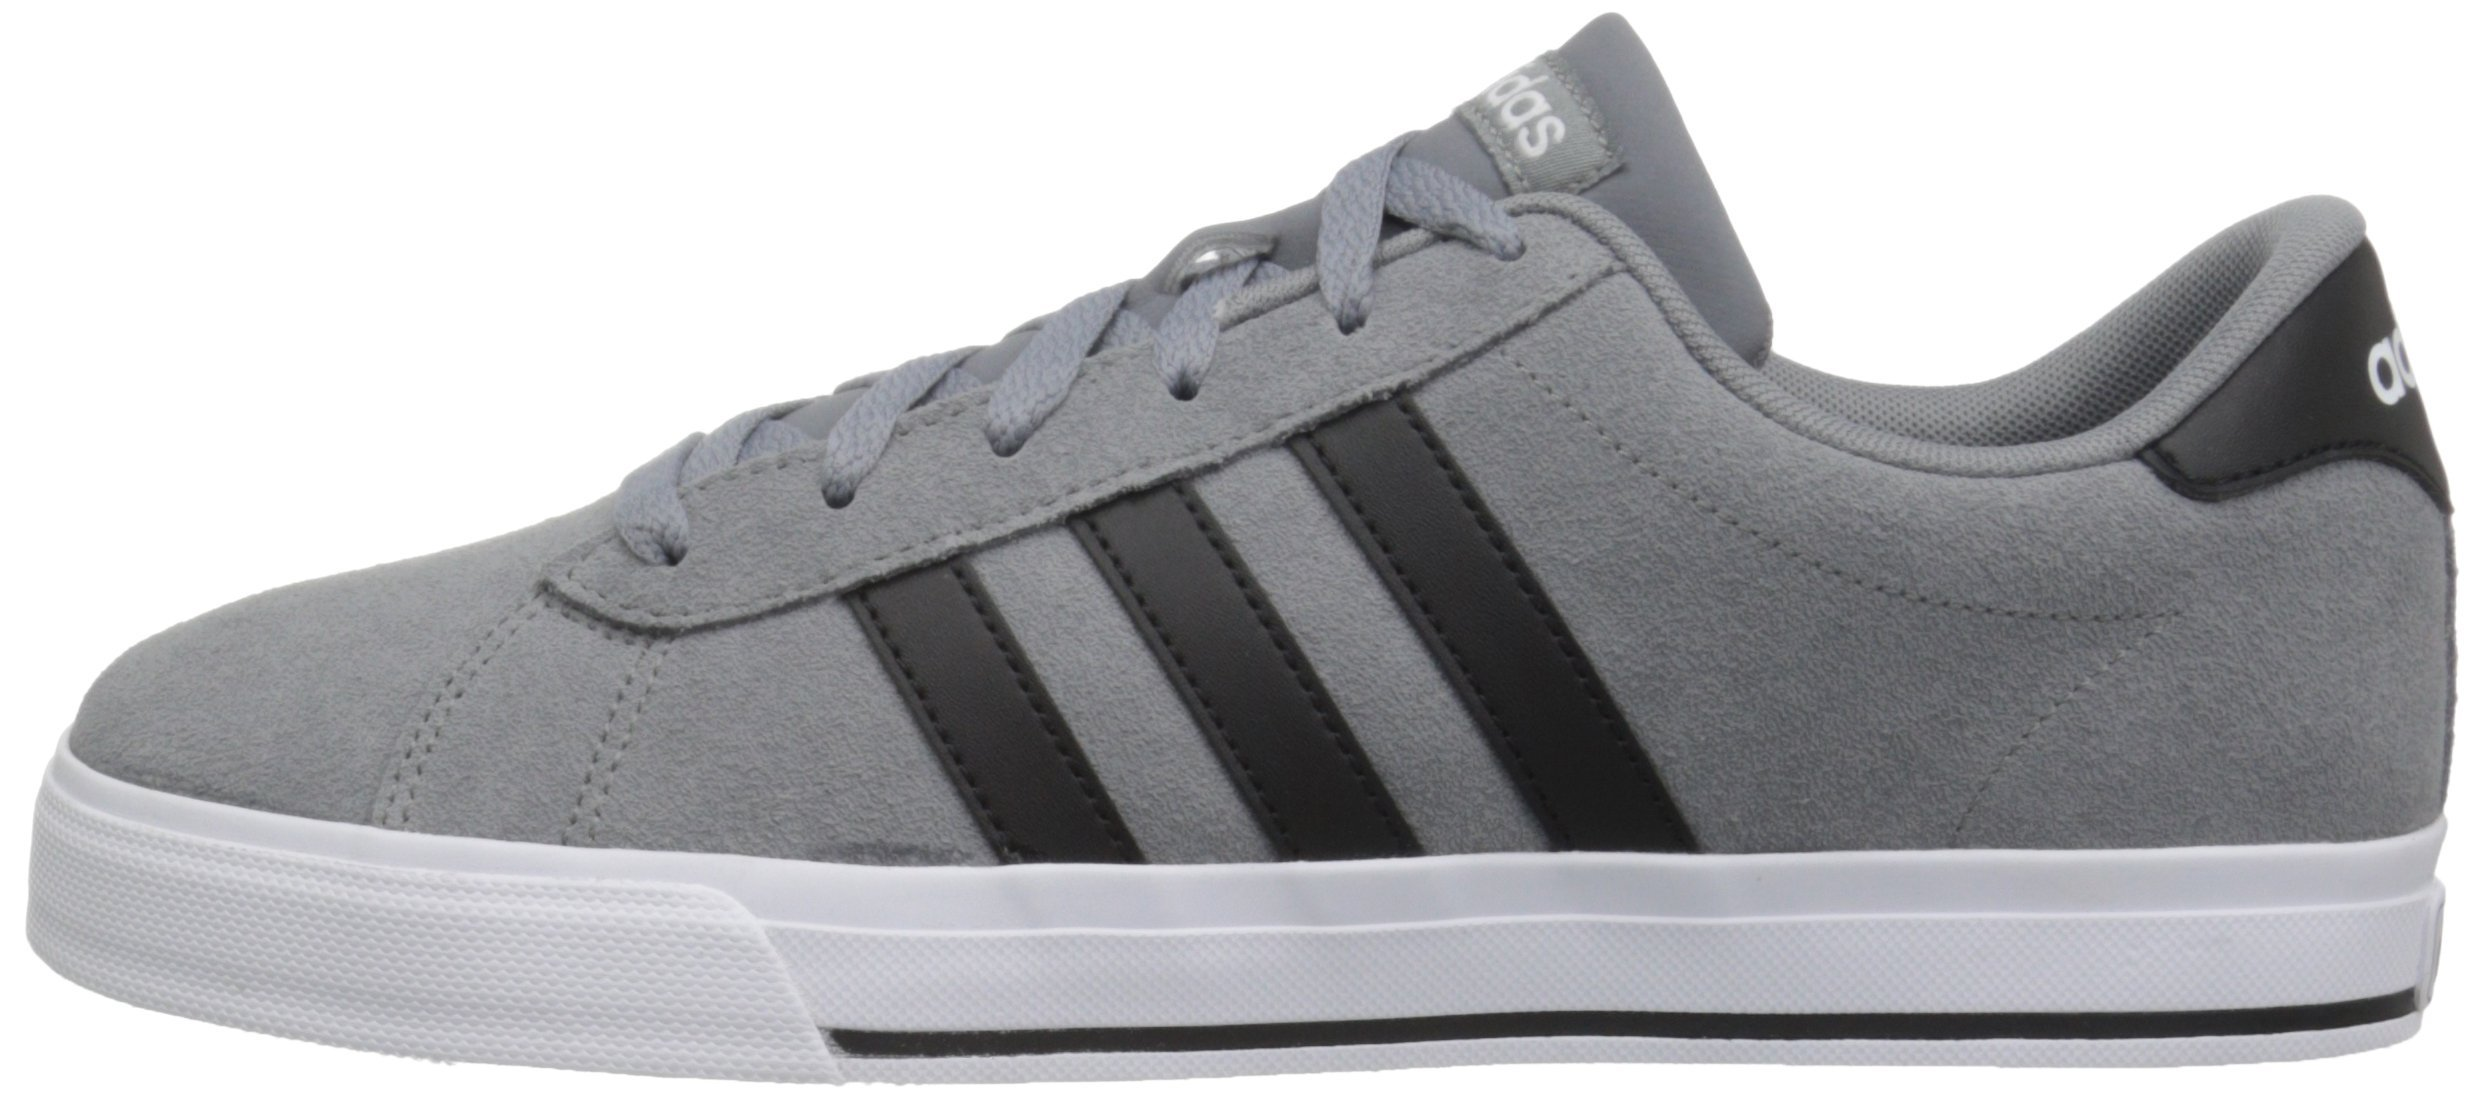 new product d9145 9a376 adidas Mens Shoes Daily Fashion Sneakers, GreyBlackWhite, (10.5 M US) -  AW4572-020  Fashion Sneakers  Clothing, Shoes  Jewelry - tibs